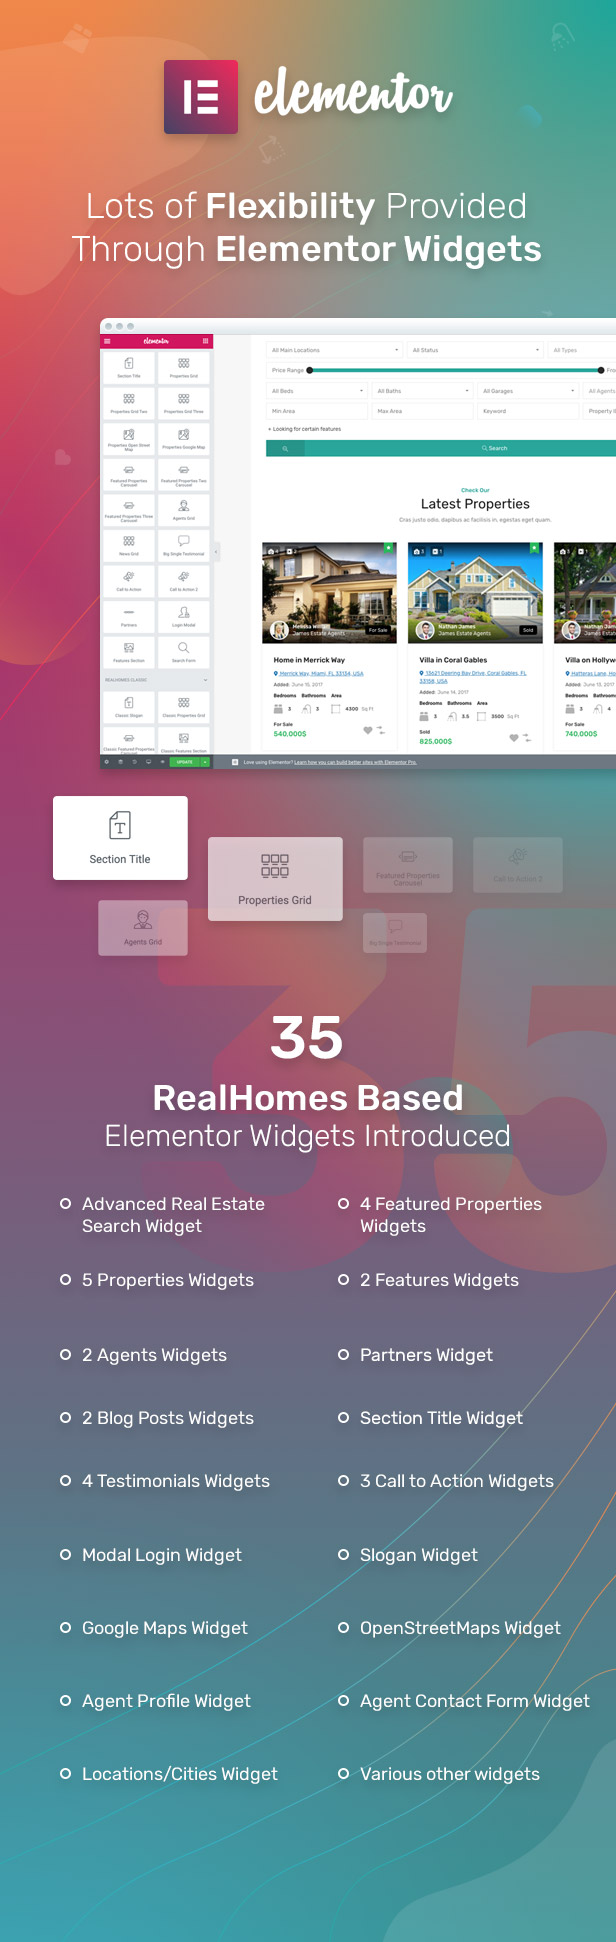 42 Elementor Widgets provided with RealHomes theme